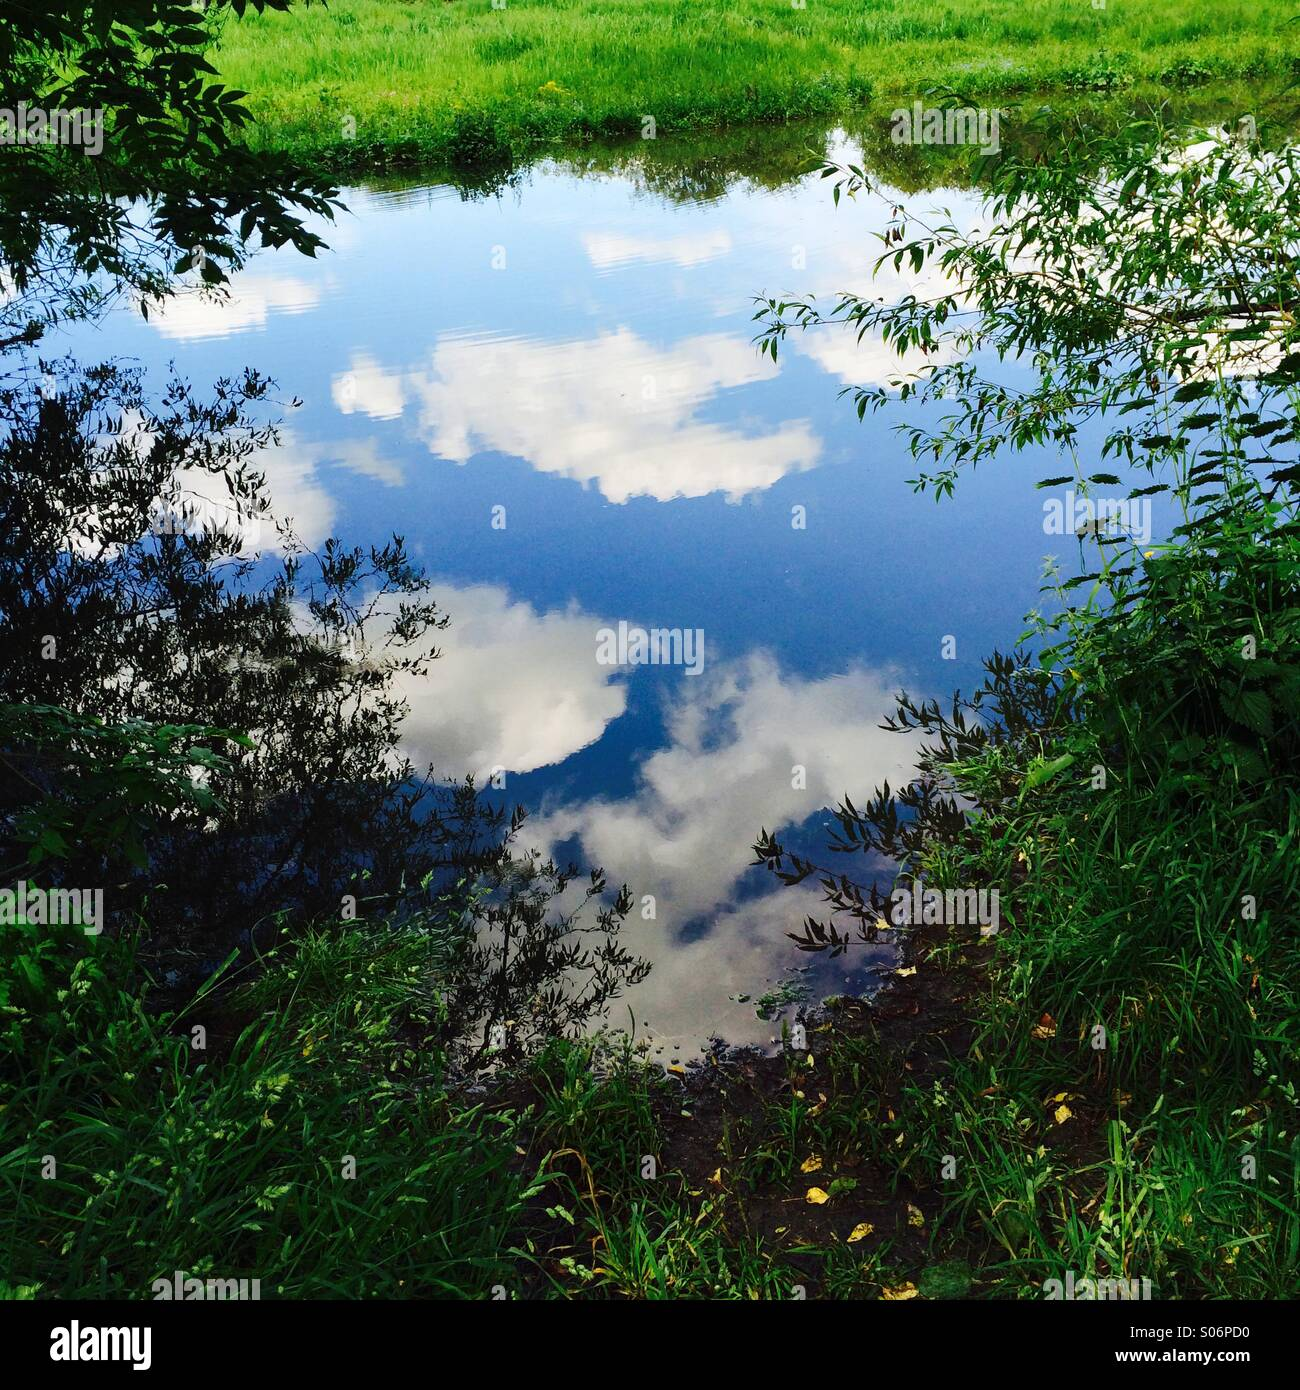 Idyllic summer scene with white clouds reflected in river. - Stock Image